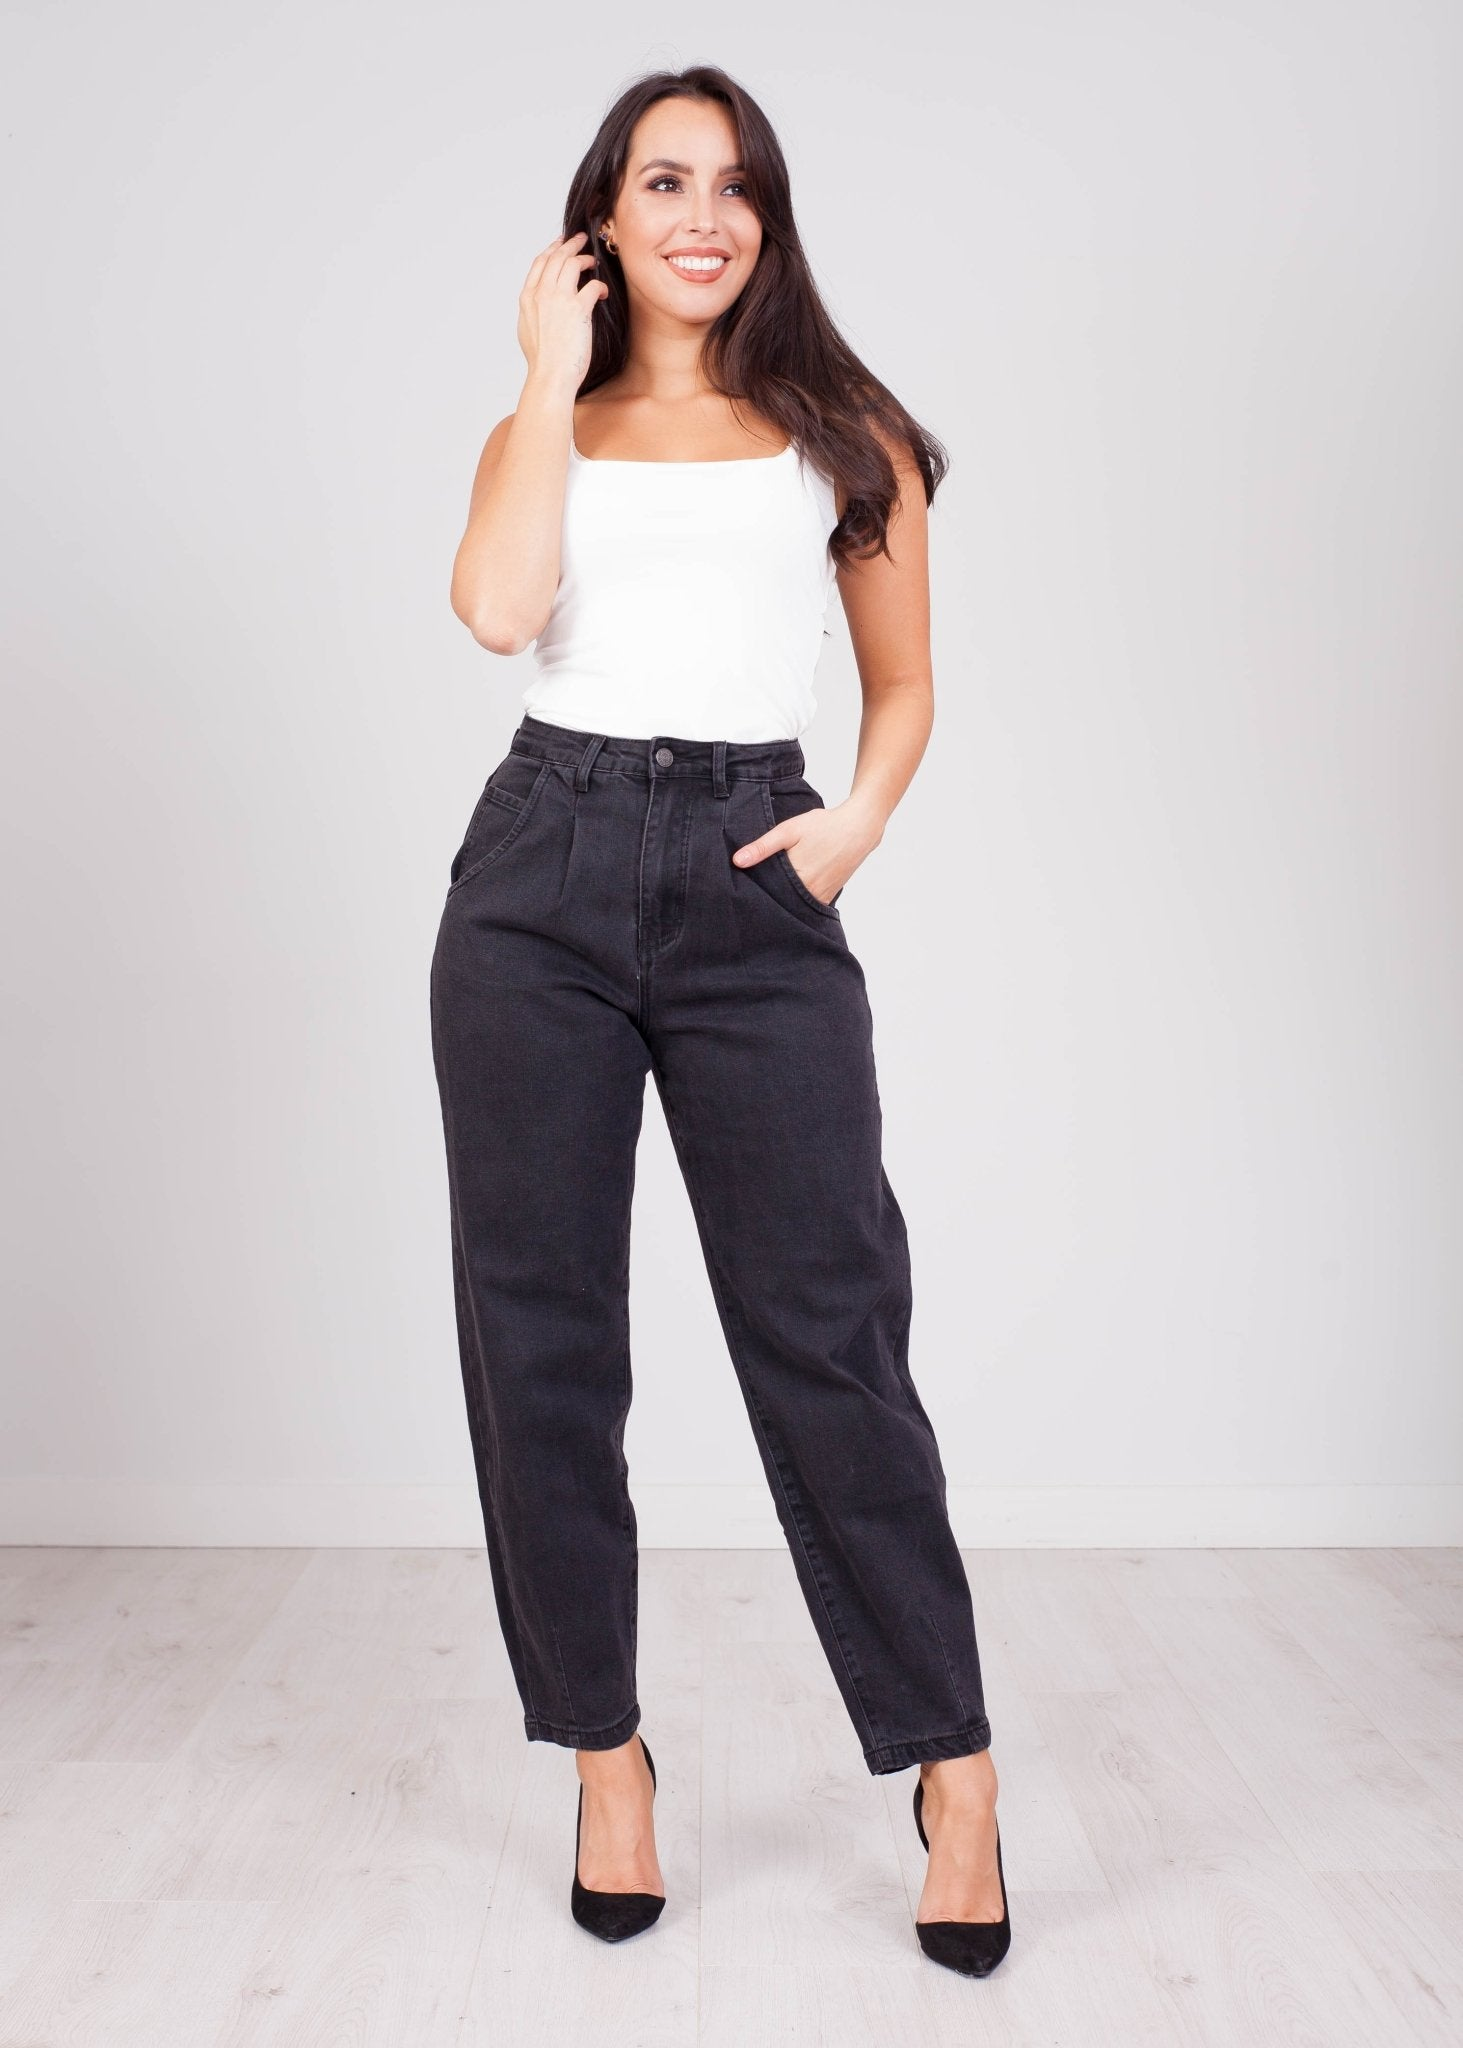 Molly Black Balloon Tapered Jean - The Walk in Wardrobe